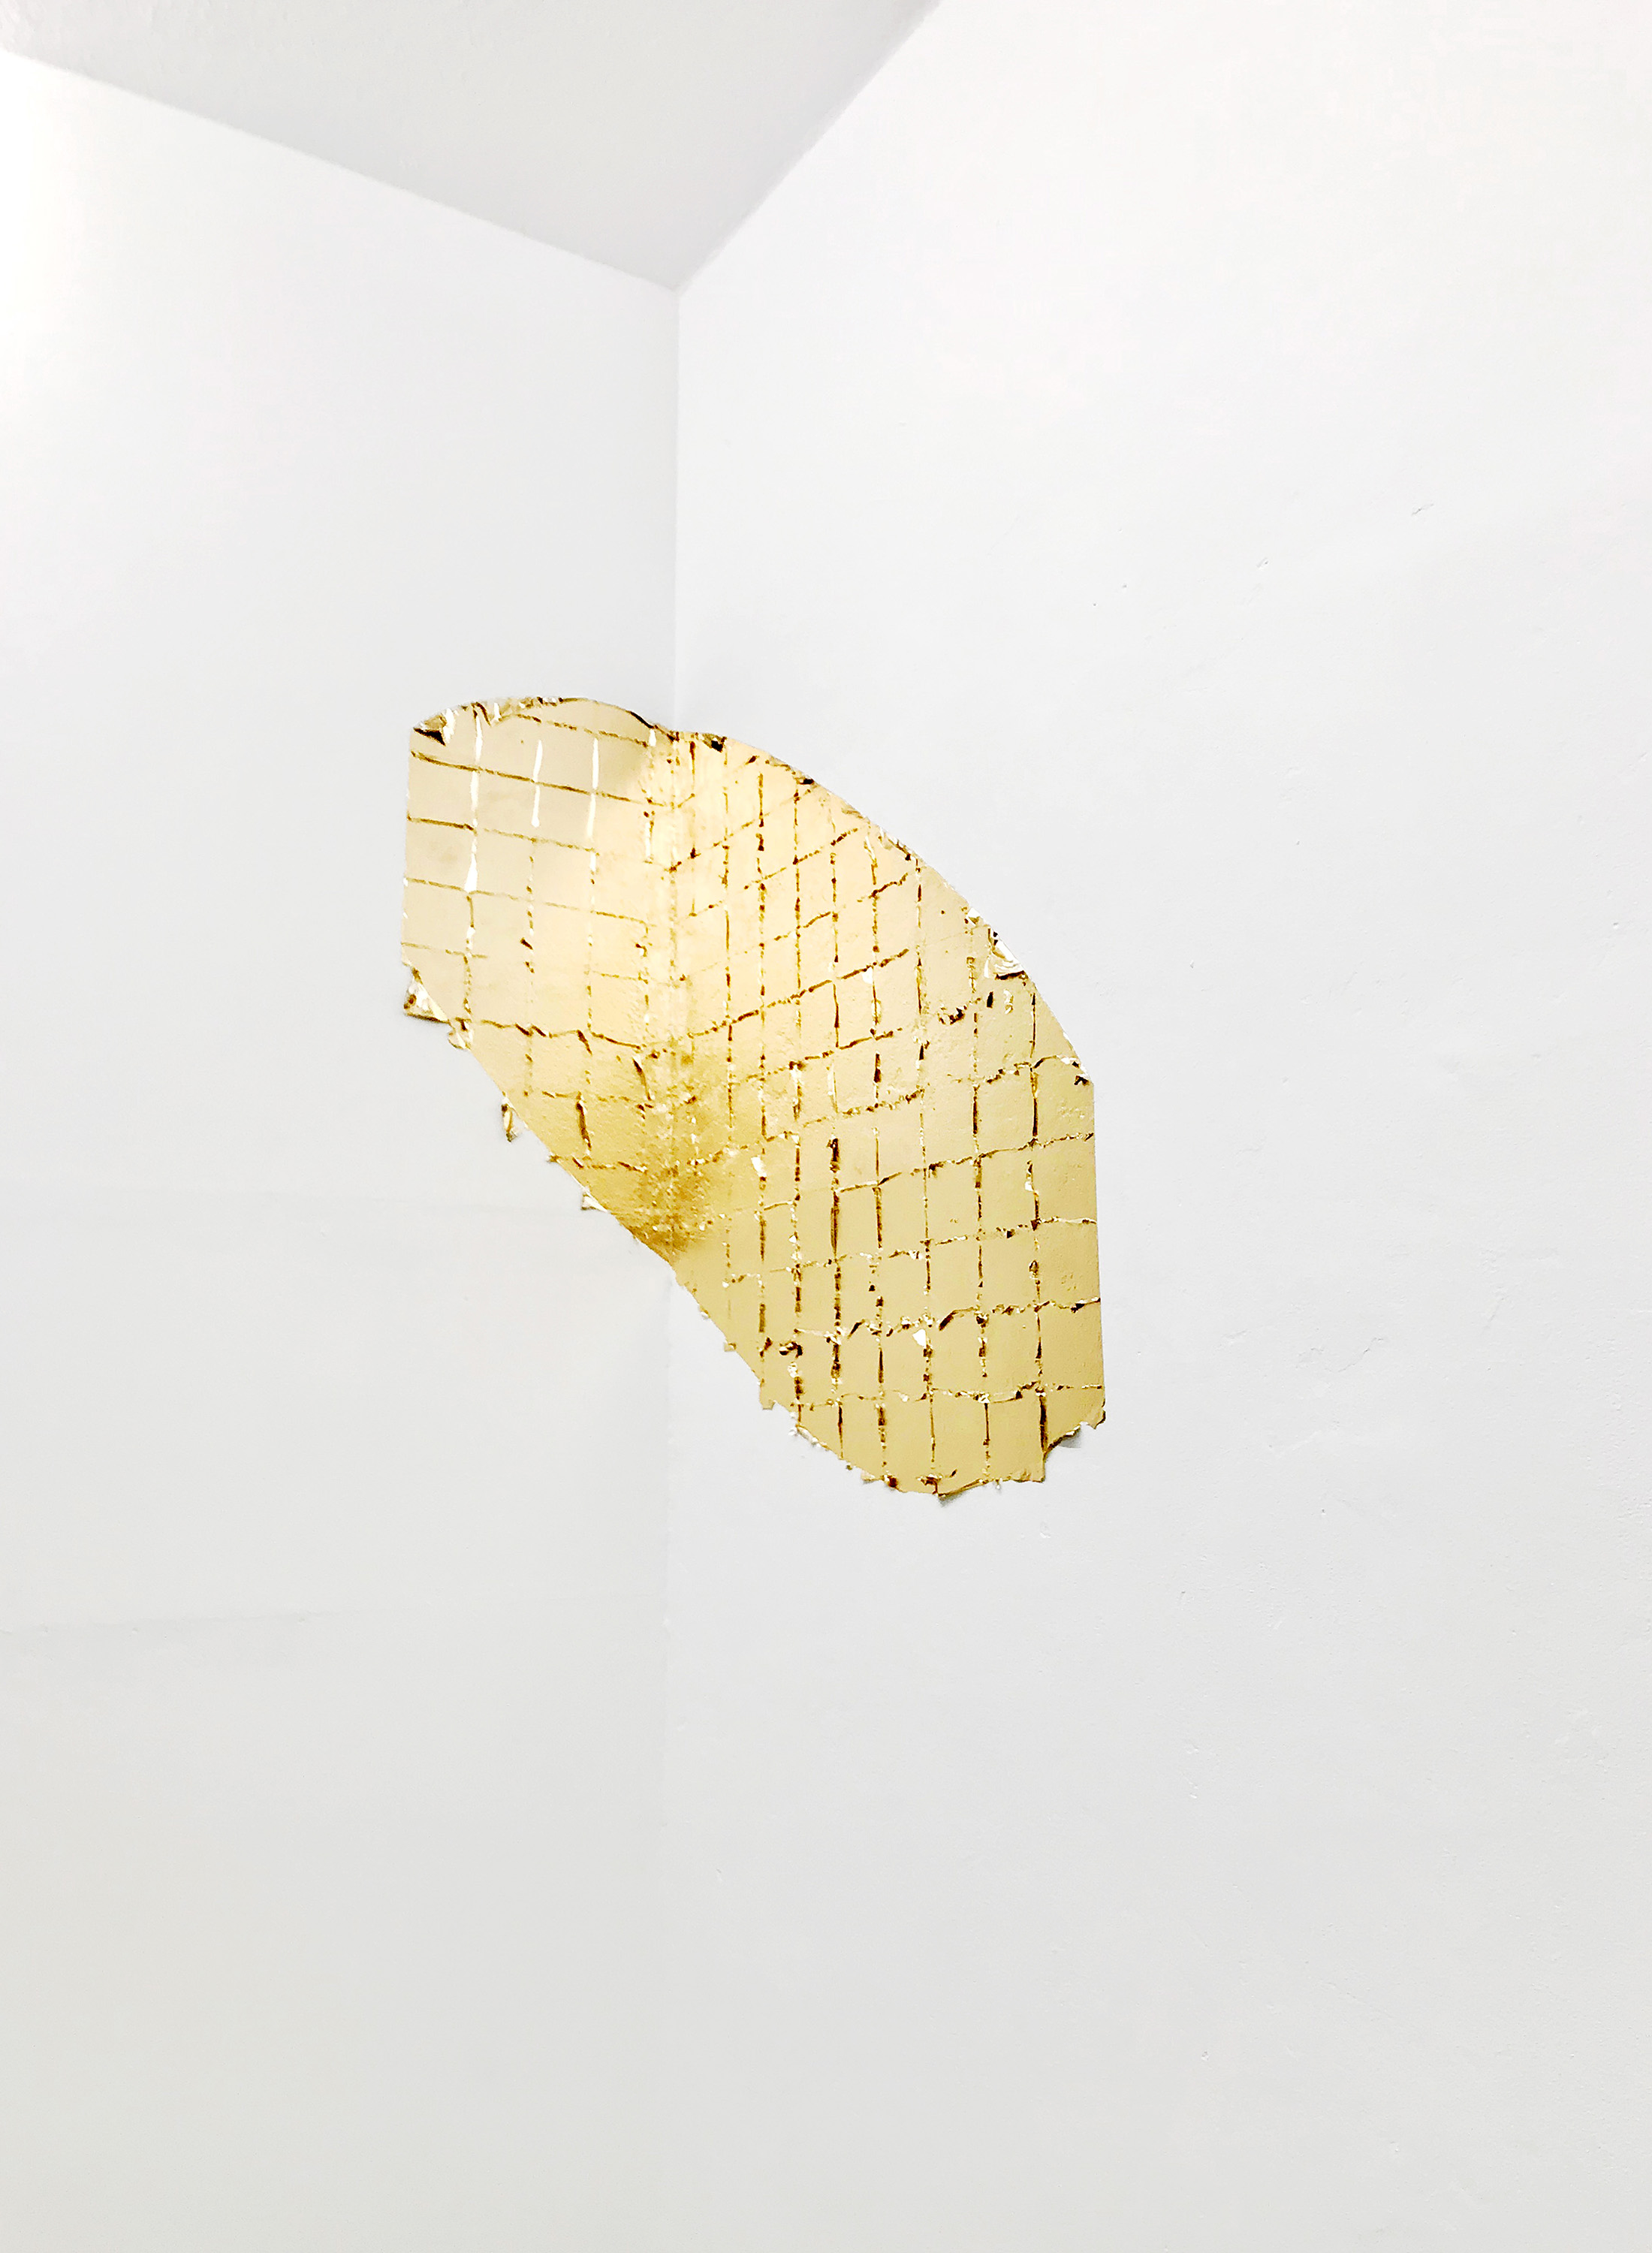 Ausblick , 201 8 gold leaf, moon gold dimensions variable, approx: 90 x 1 30 cm